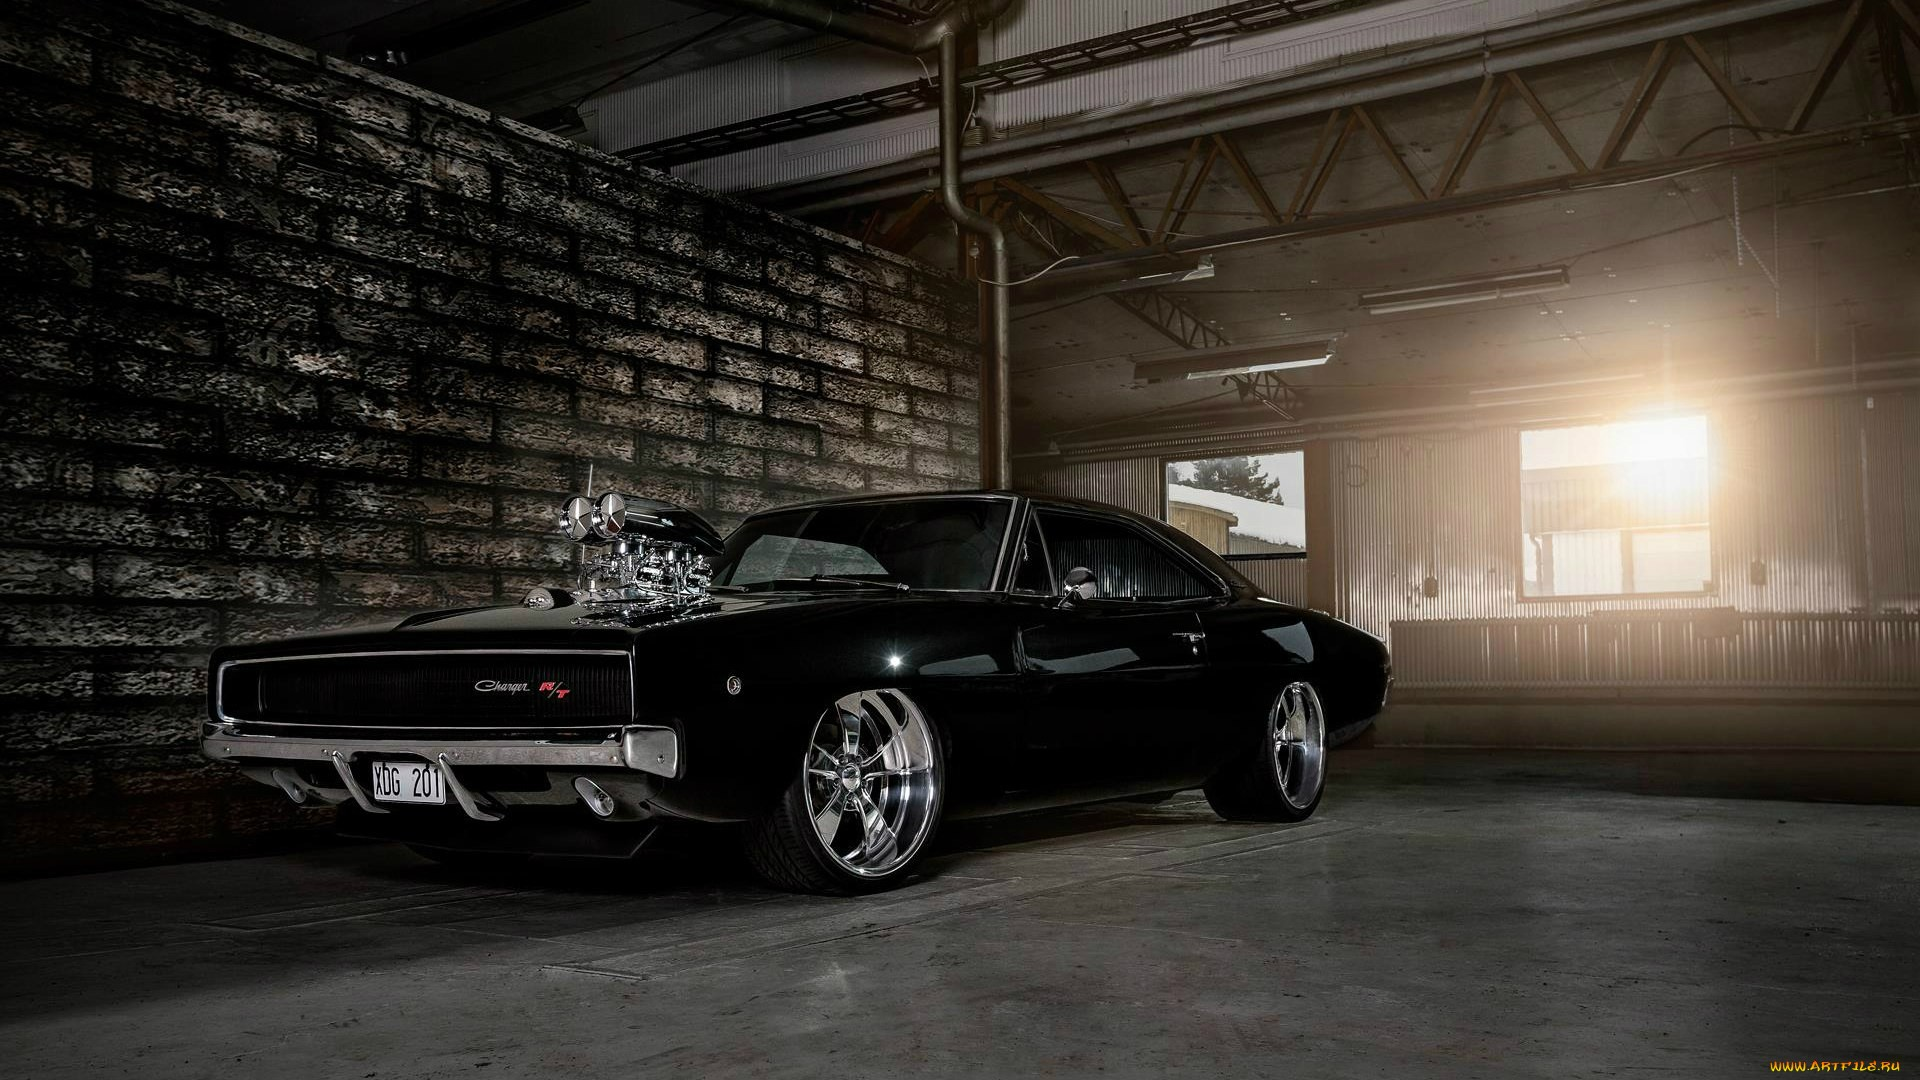 Dodge Charger Muscle Cars Hot Rod Engine Wallpaper